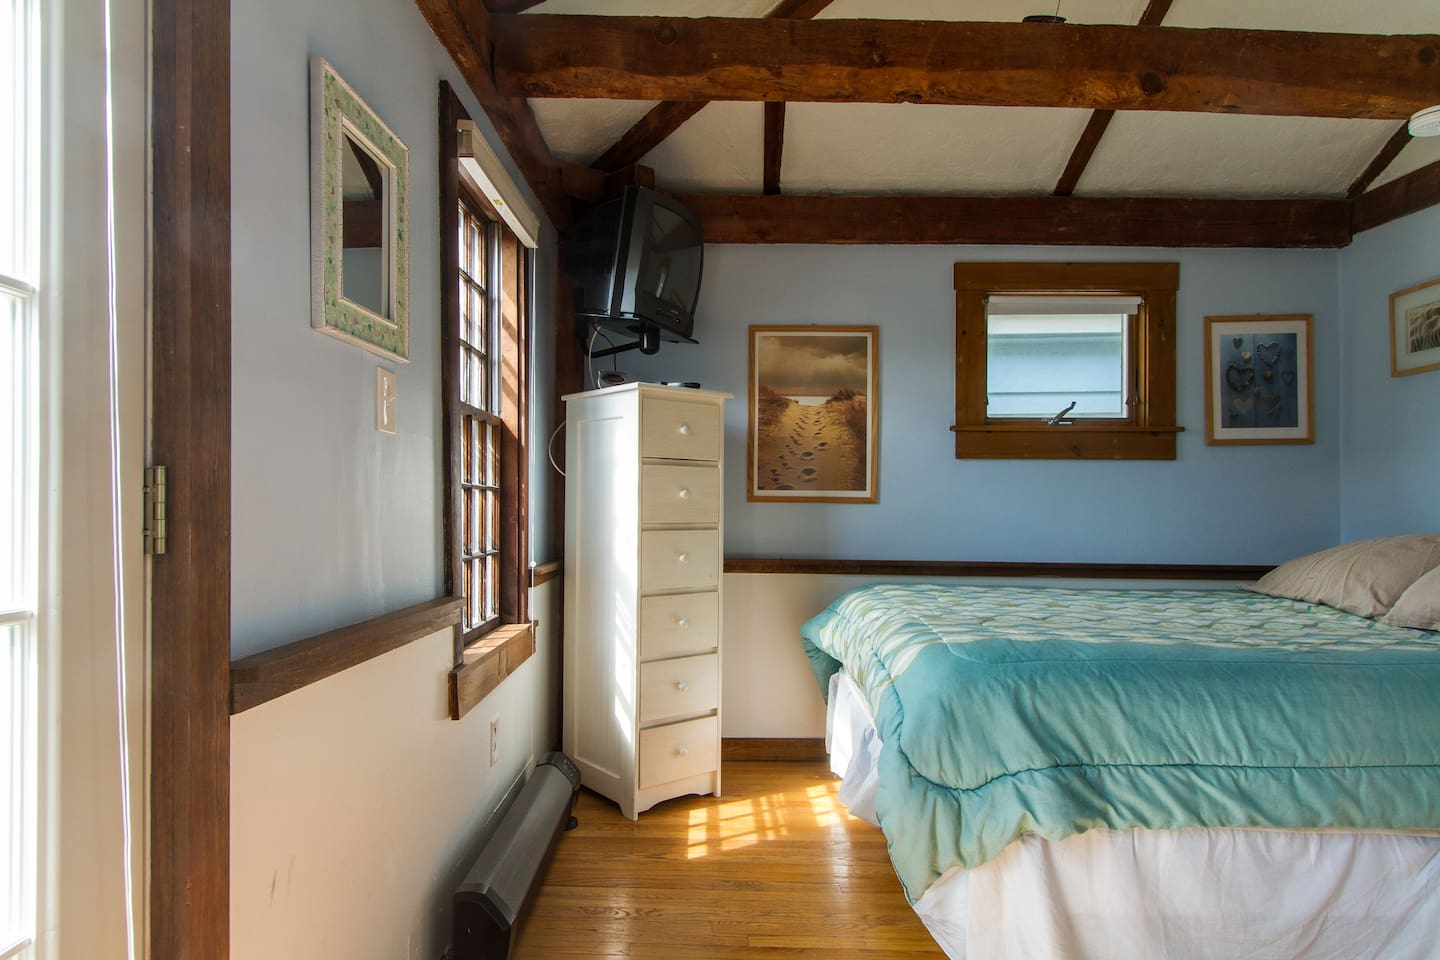 Your private bedroom is accessible from a separate entry from outside or inside from the living room. Bedroom includes a very comfortable queen bed, a closet With provided hangers, lots of natural light, and cable TV.